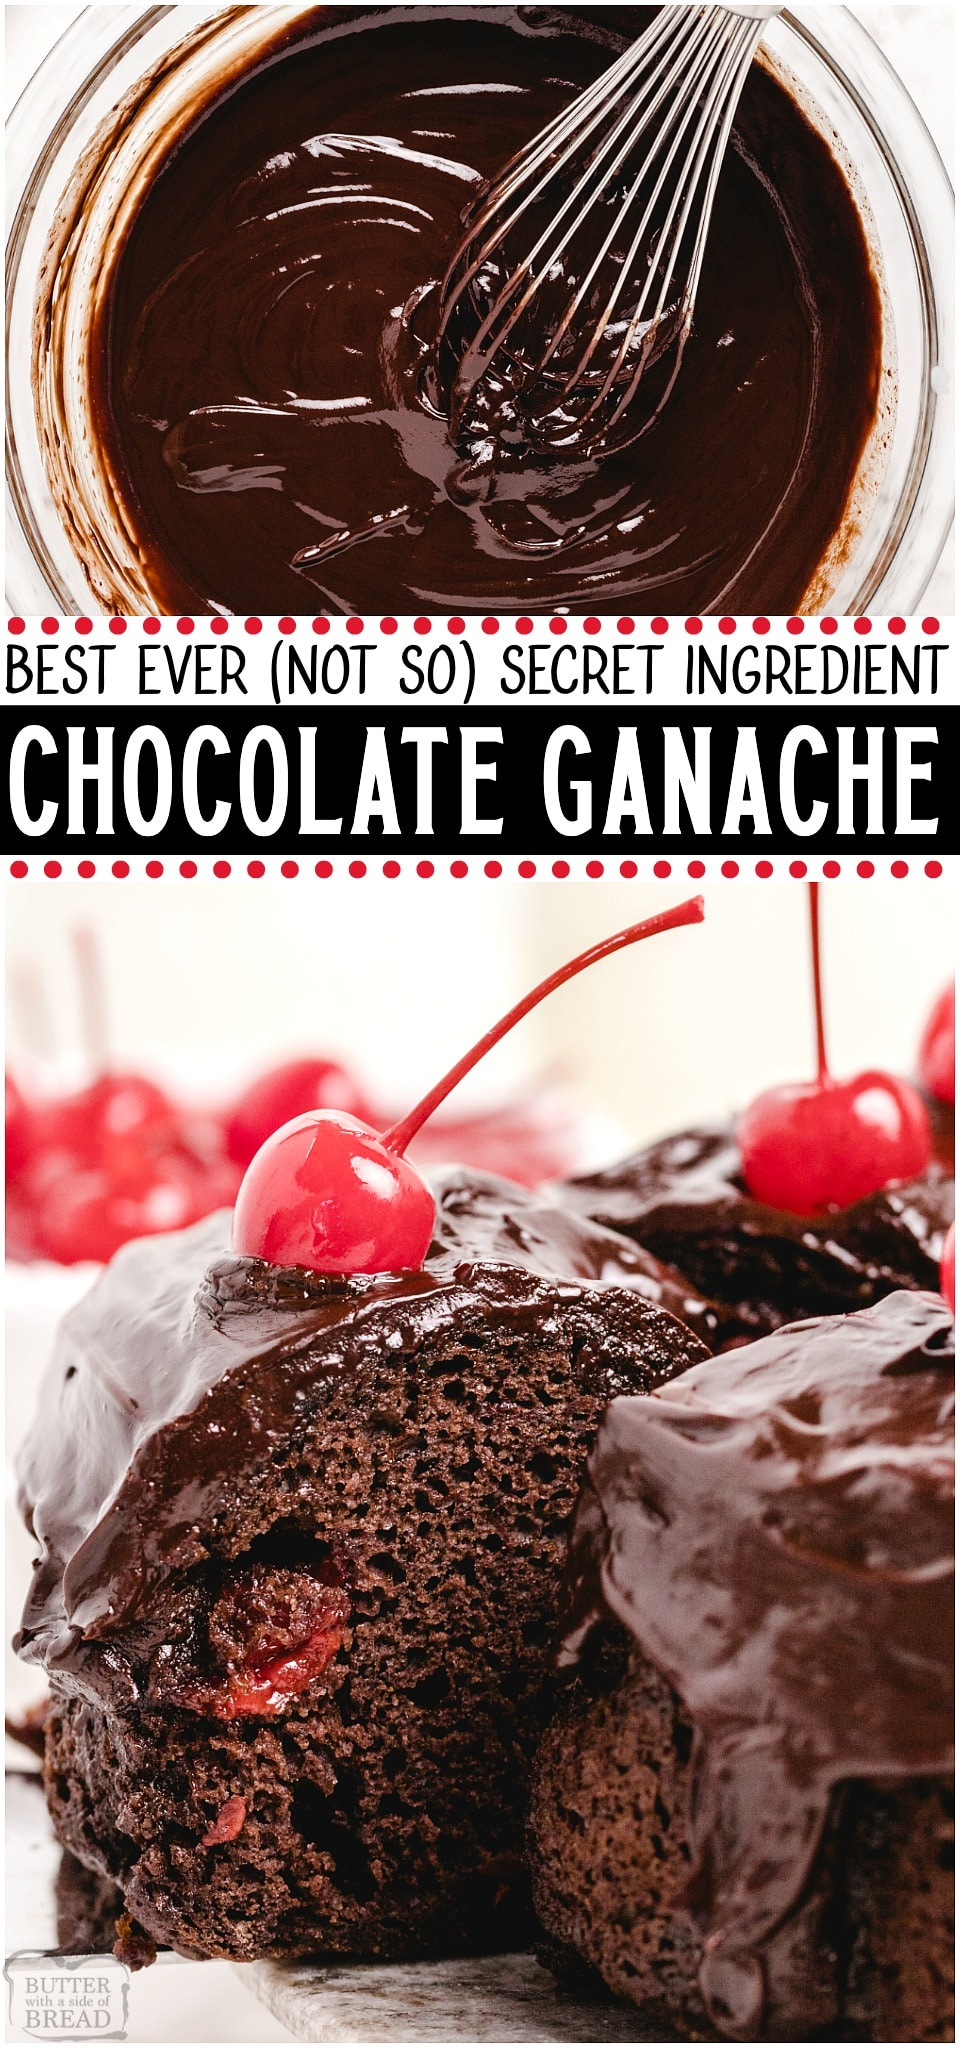 "Best Chocolate Ganache Ever made with just 3 ingredients & yields the silkiest, smooth & rich ganache. You MUST TRY my recipe- the ""secret"" ingredient makes my chocolate ganache incredible! #chocolate #ganache #dessert #homemade #butter #easyrecipe from BUTTER WITH A SIDE OF BREAD"